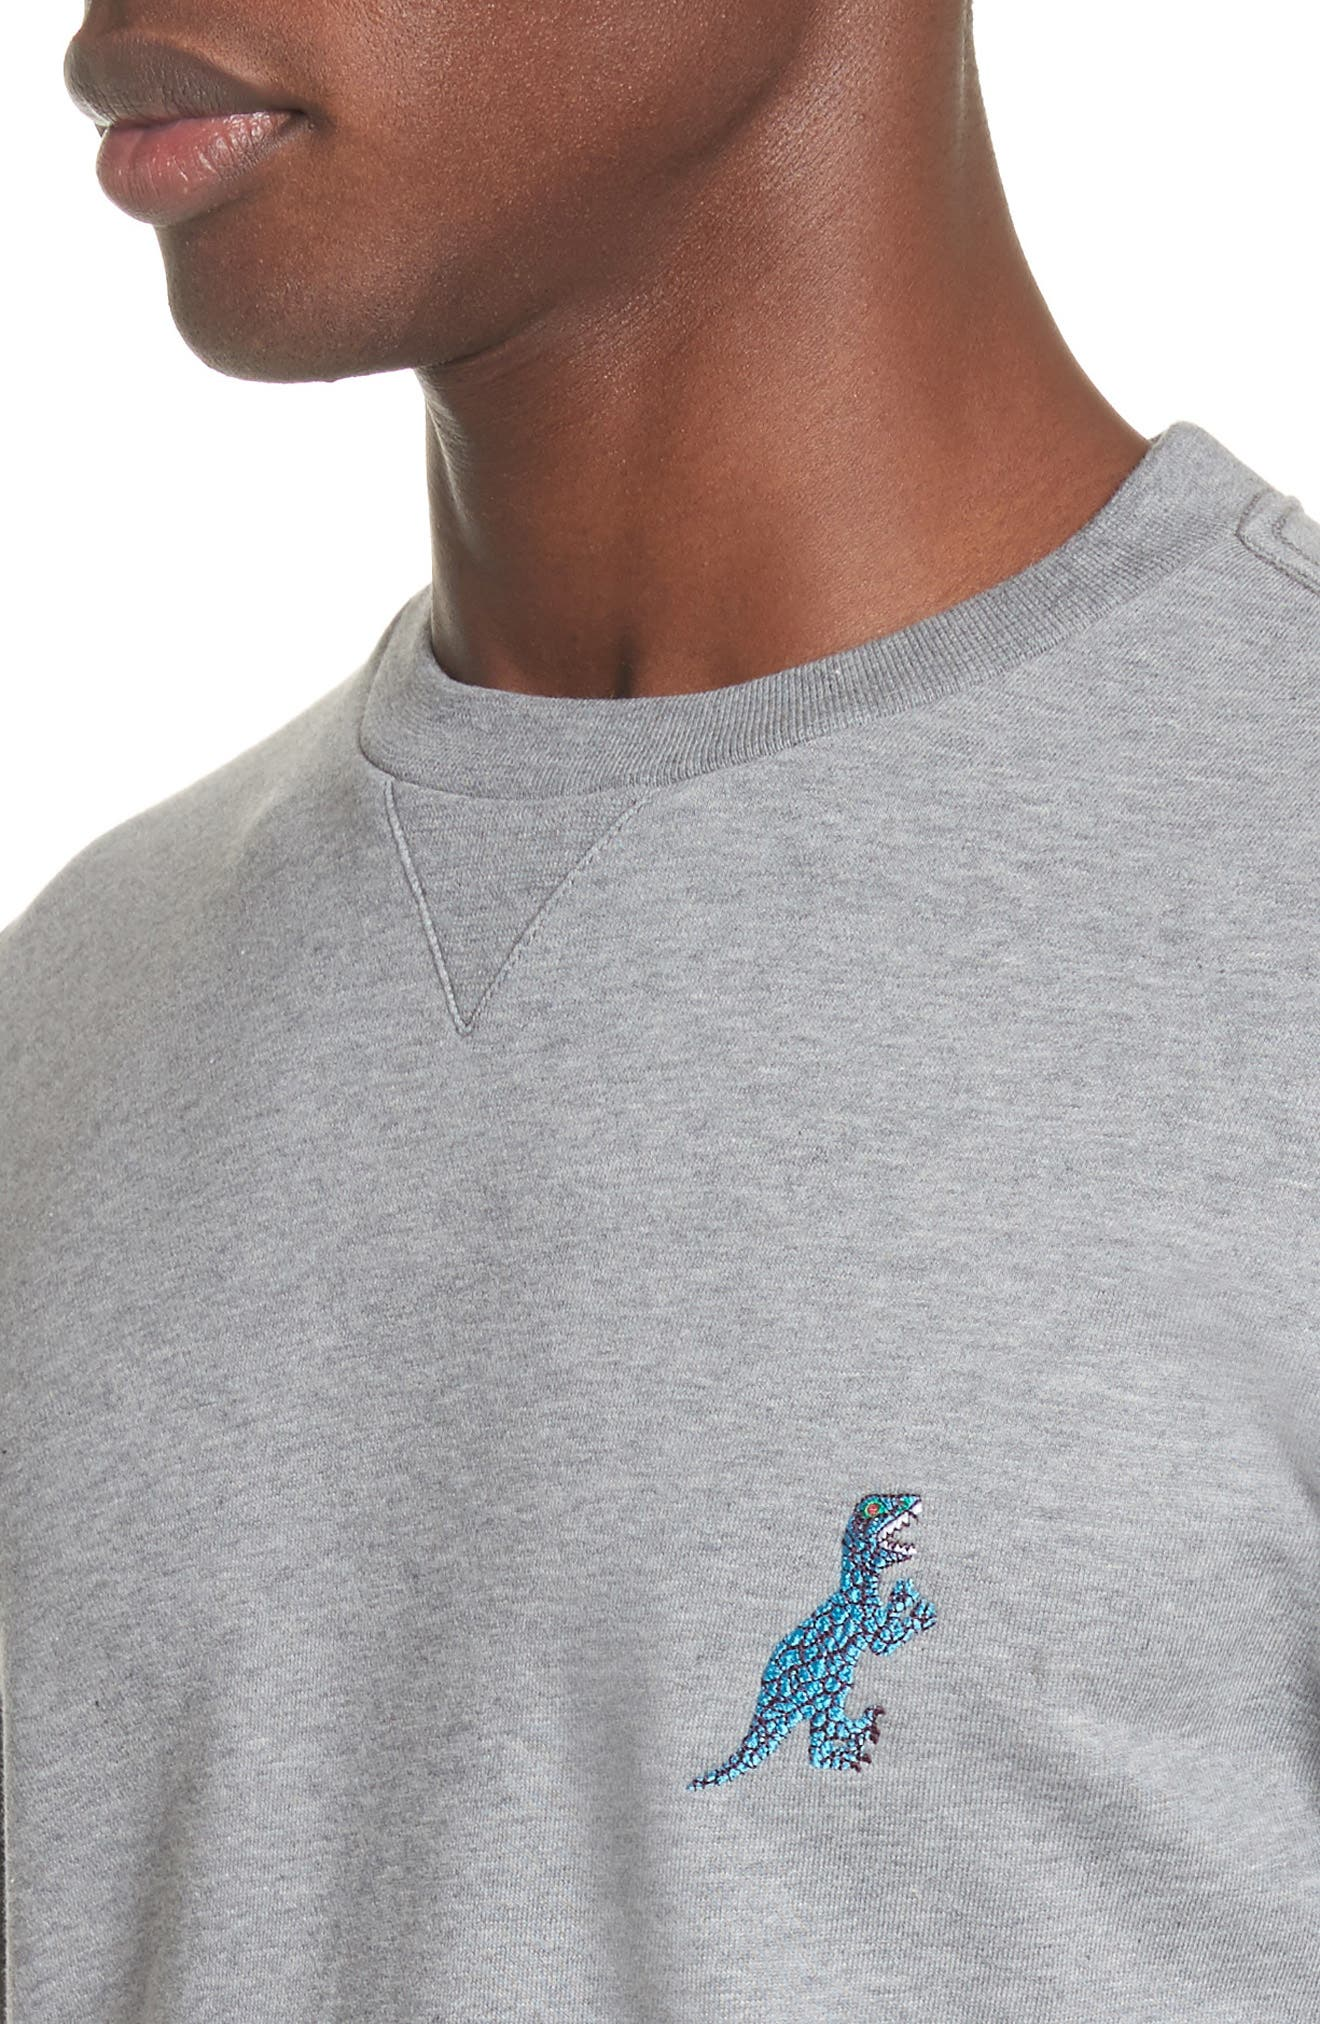 Dino Embroidered Crewneck Sweatshirt,                             Alternate thumbnail 4, color,                             Grey